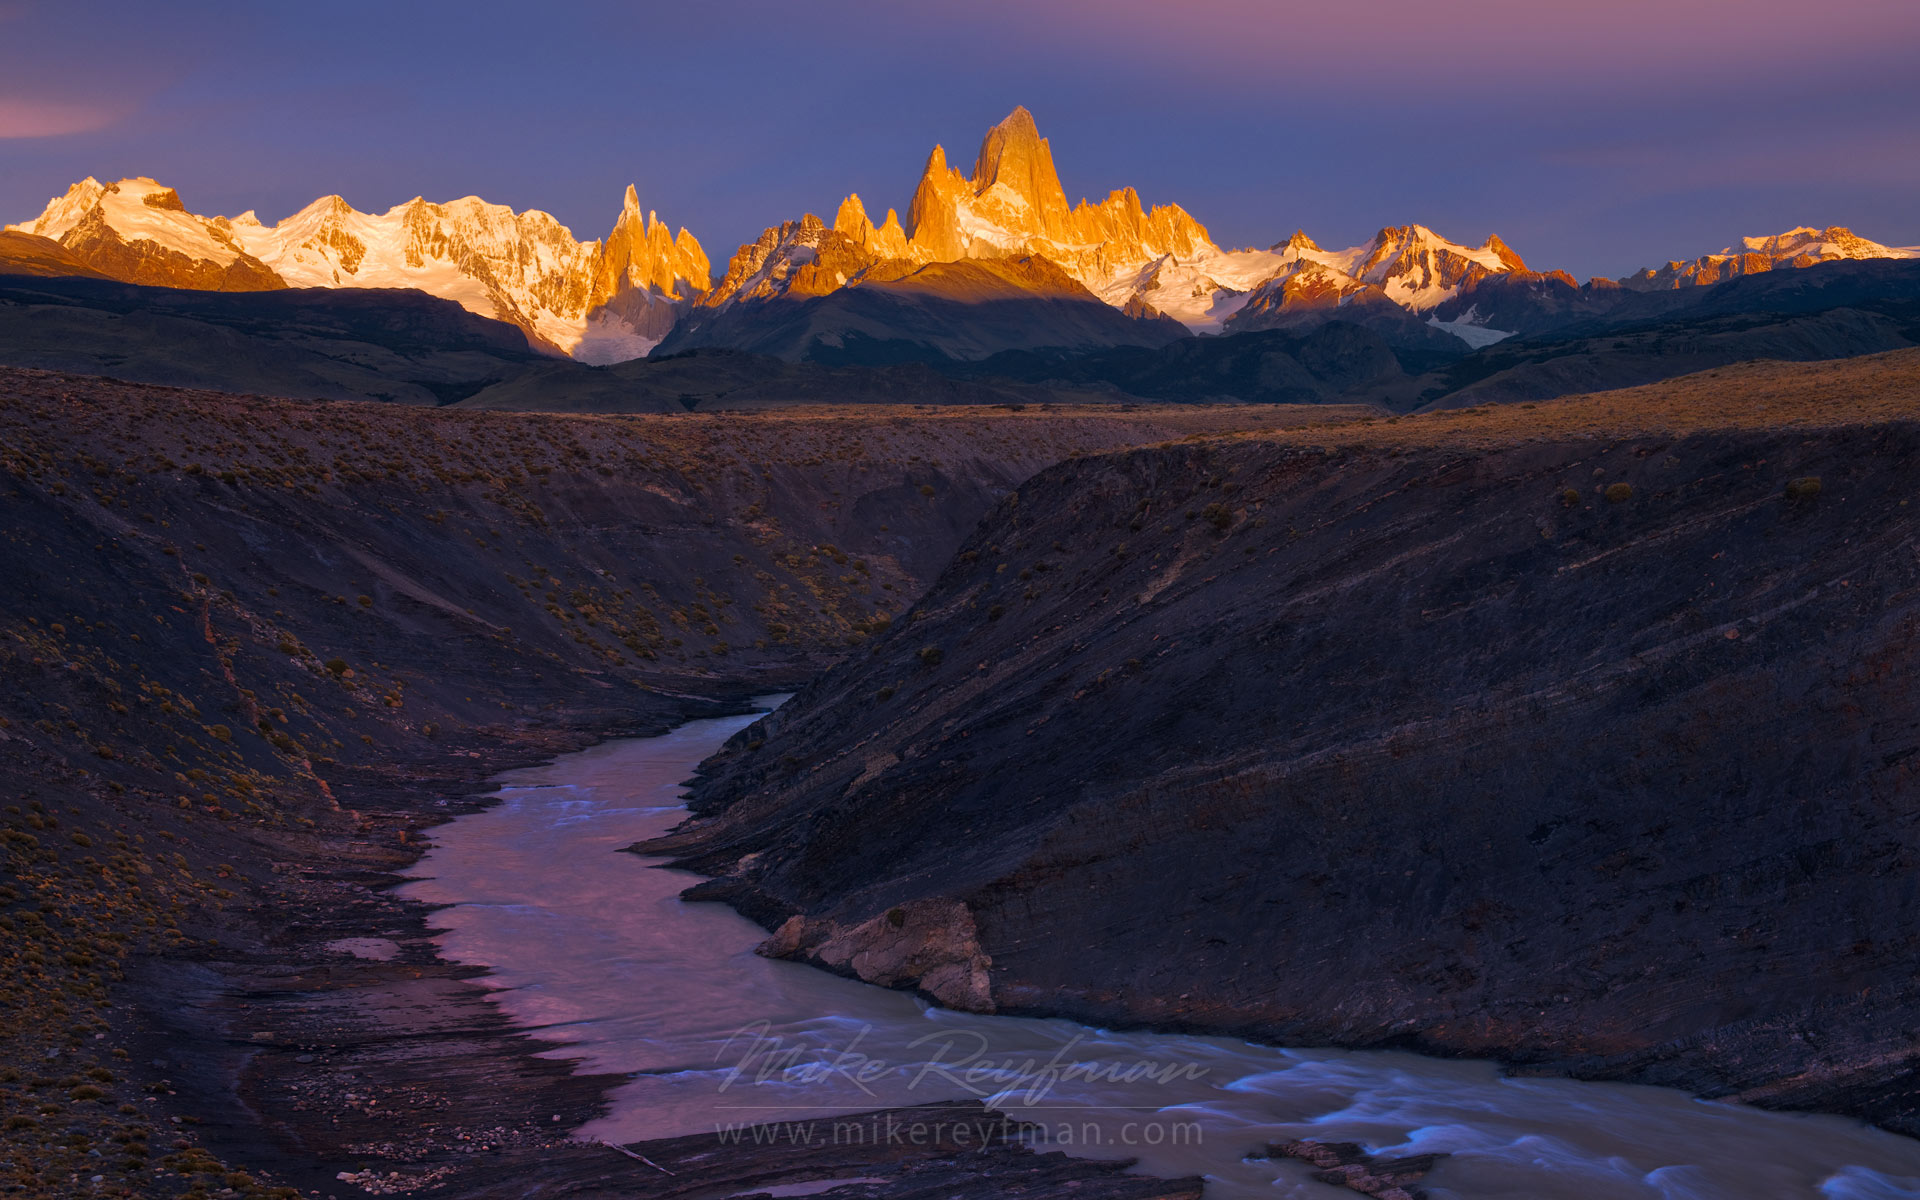 Mountain magic. Fitzroy and Cerro Torre massifs at Sunrise from Las Vueltas River canyon overlook. Patagonian Andes, Santa Cruz, Argentina. - Fitzroy-Cerro-Torre-Perito-Moreno-Patagonia-Argentina - Mike Reyfman Photography